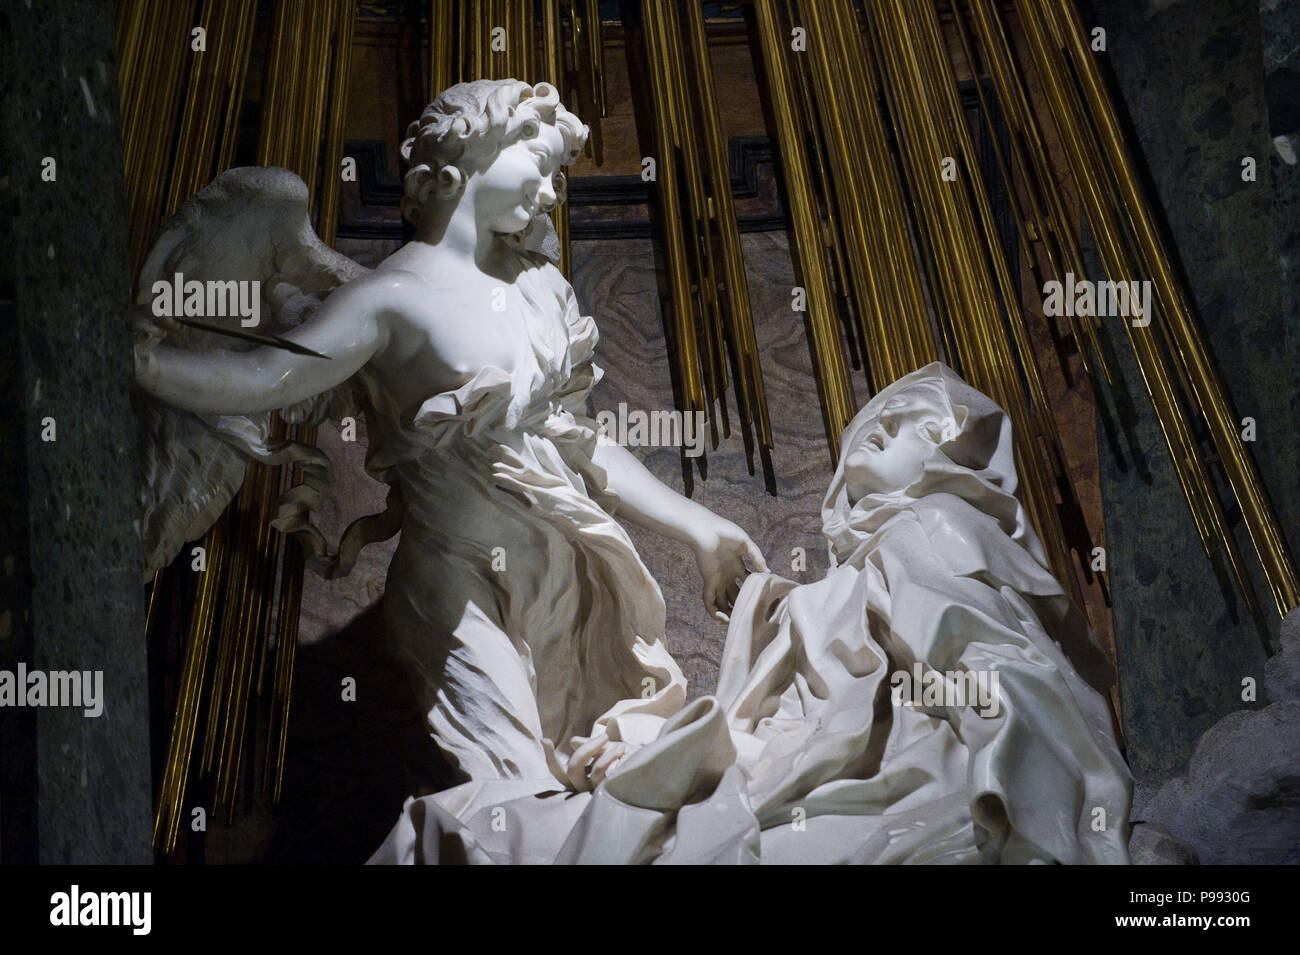 Sculpture Gian Lorenzo Bernini Stock Photos & Sculpture Gian